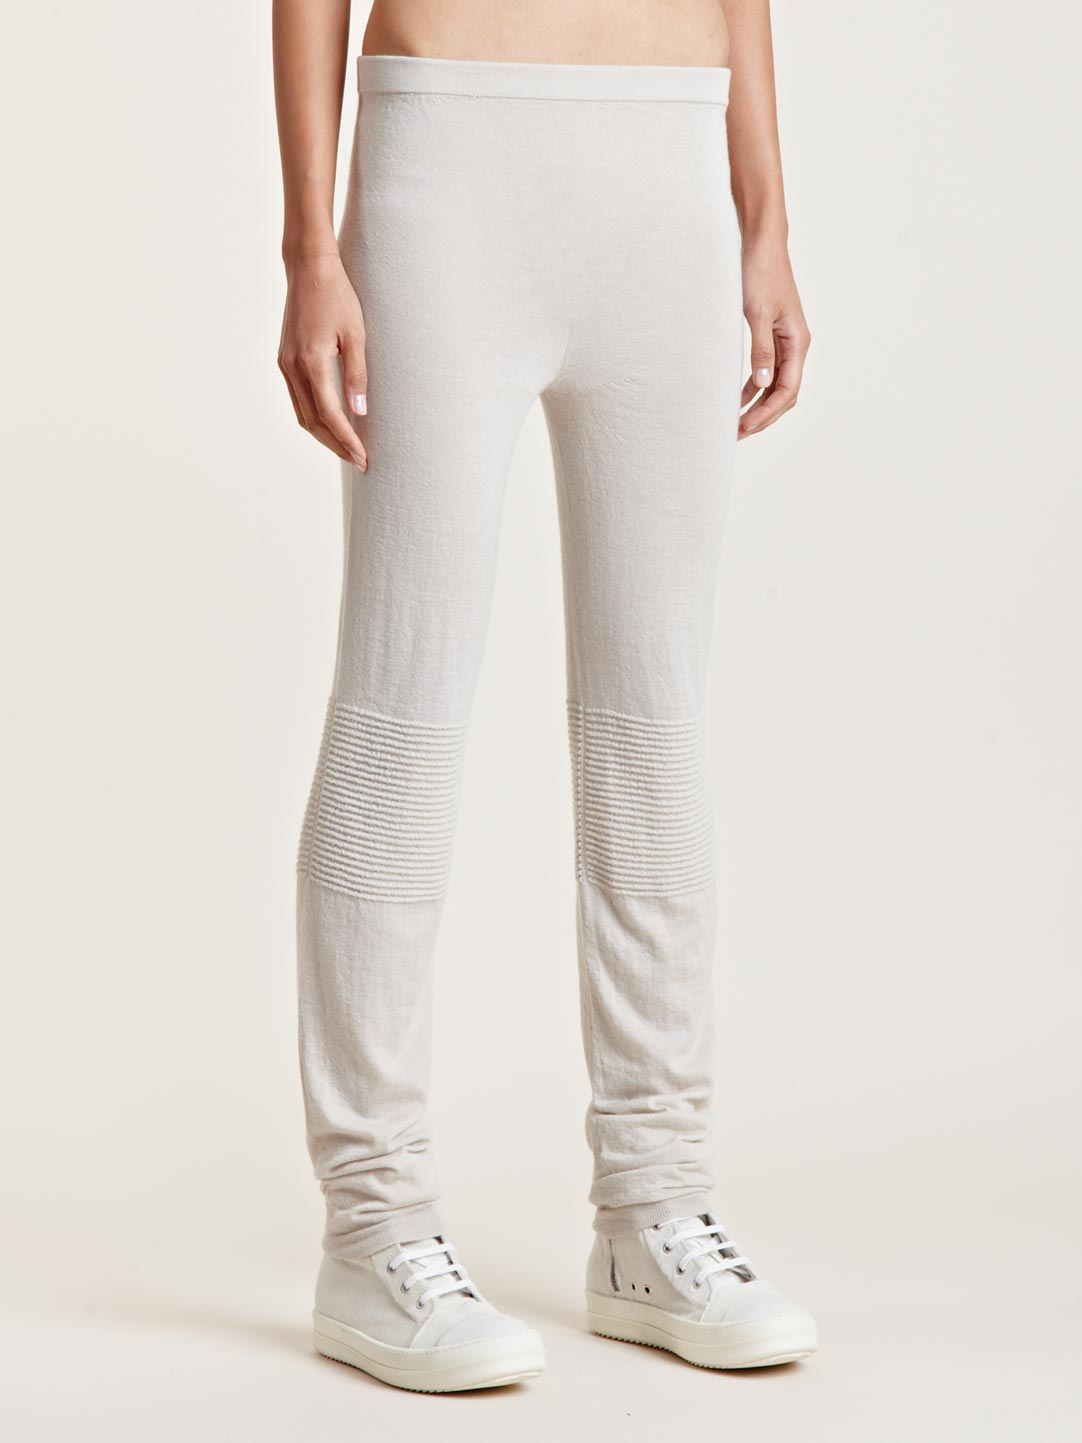 a256c4eaa9ee9 Rick Owens Womens Cashmere Leggings in White - Lyst